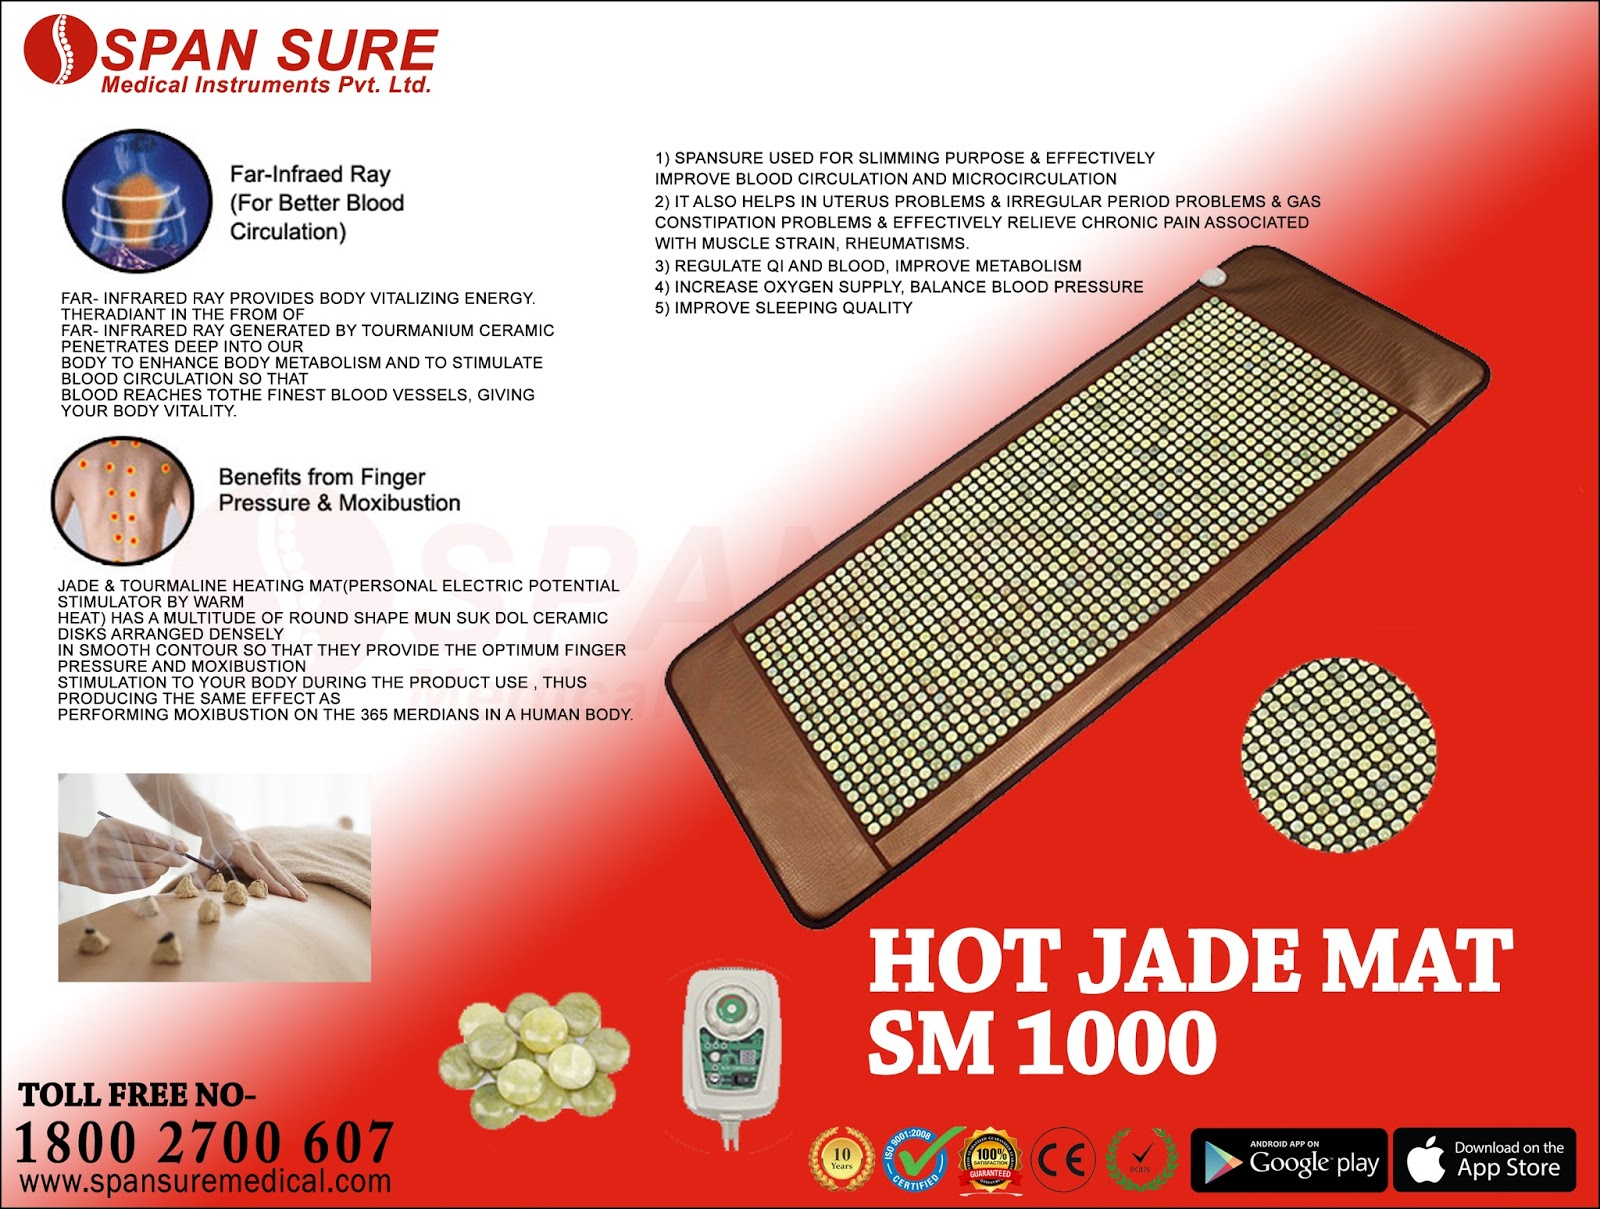 system prozn healthcare heating ltd jade crystal hyundai co shop mat view tourmaline mattress goods medical